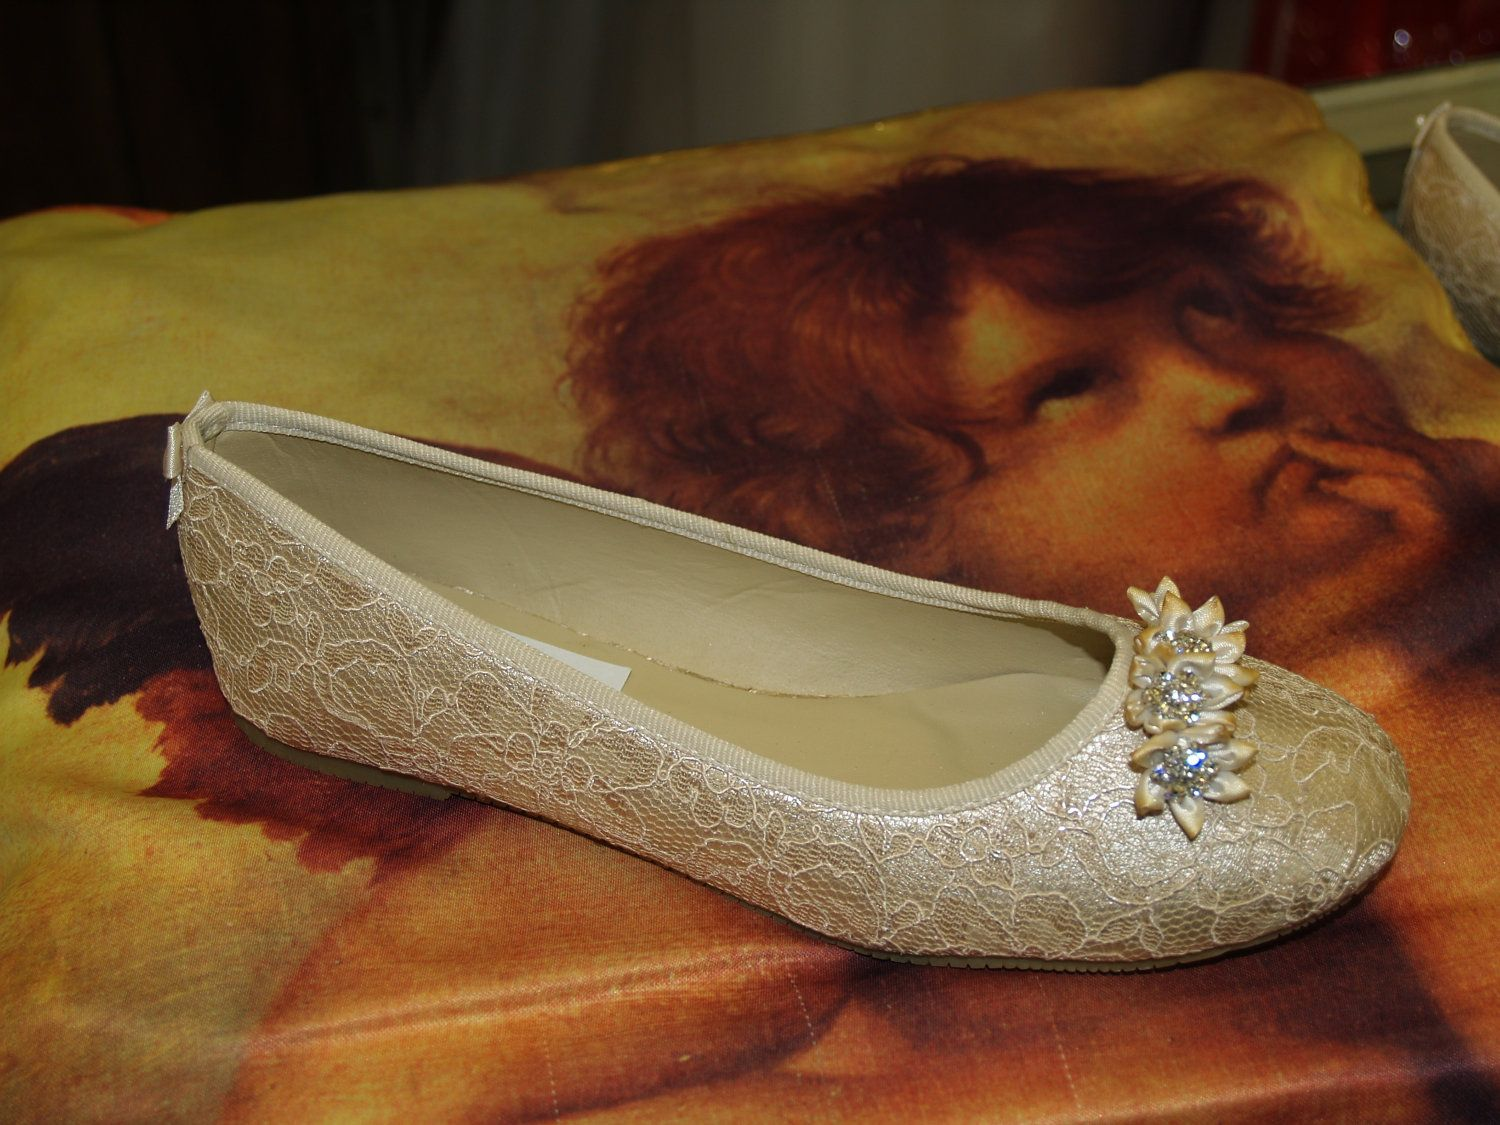 Bridal Flat Shoes Champagne Or Ivory Color Lace Overlayed And Satin Flowers With Crystals Trim